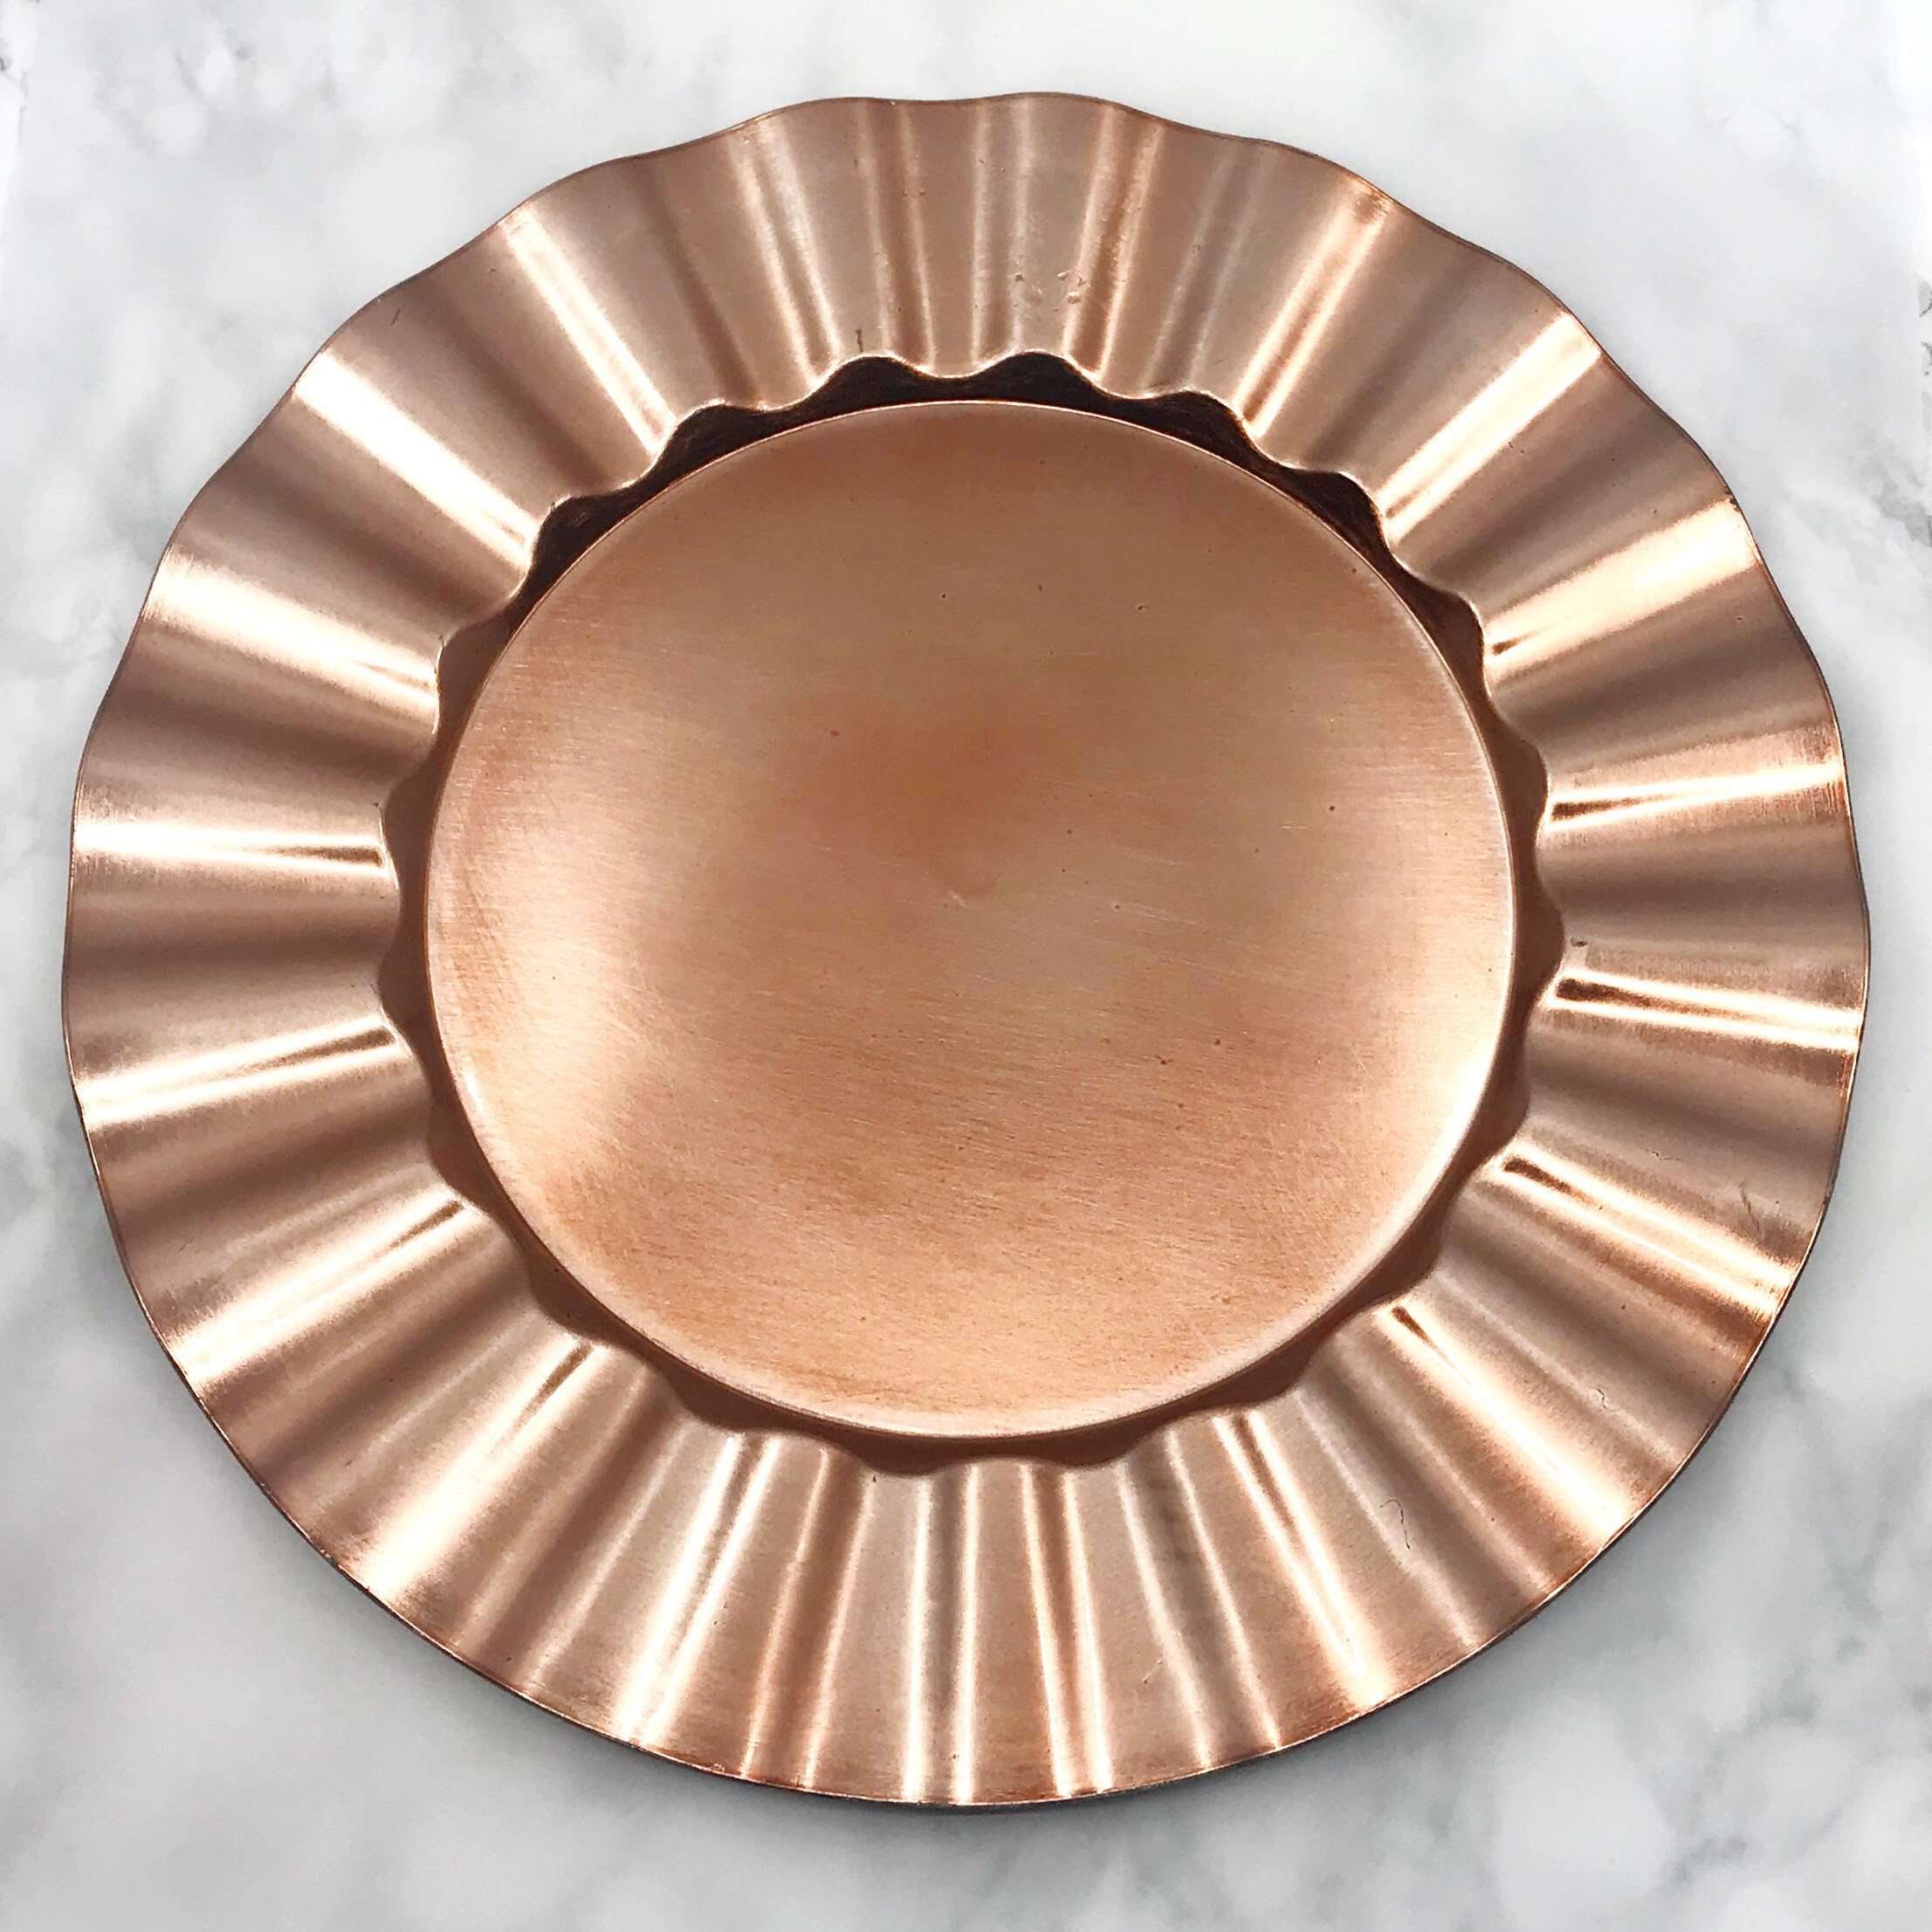 Acrylic Rose Gold Ruffled Rim Chargers